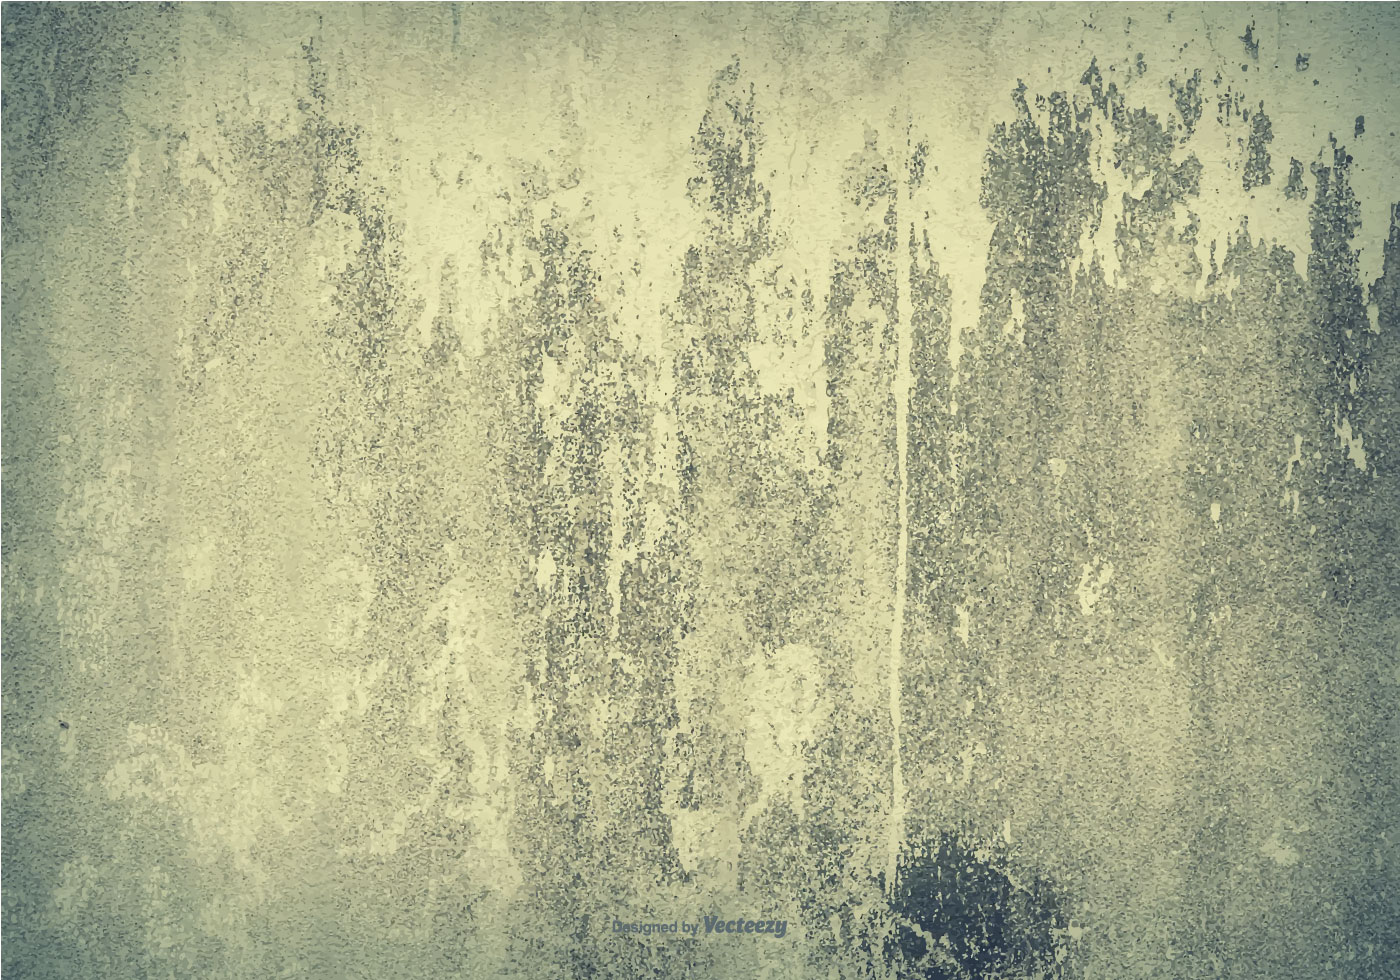 Old Grunge Wall Texture - Download Free Vector Art, Stock ...